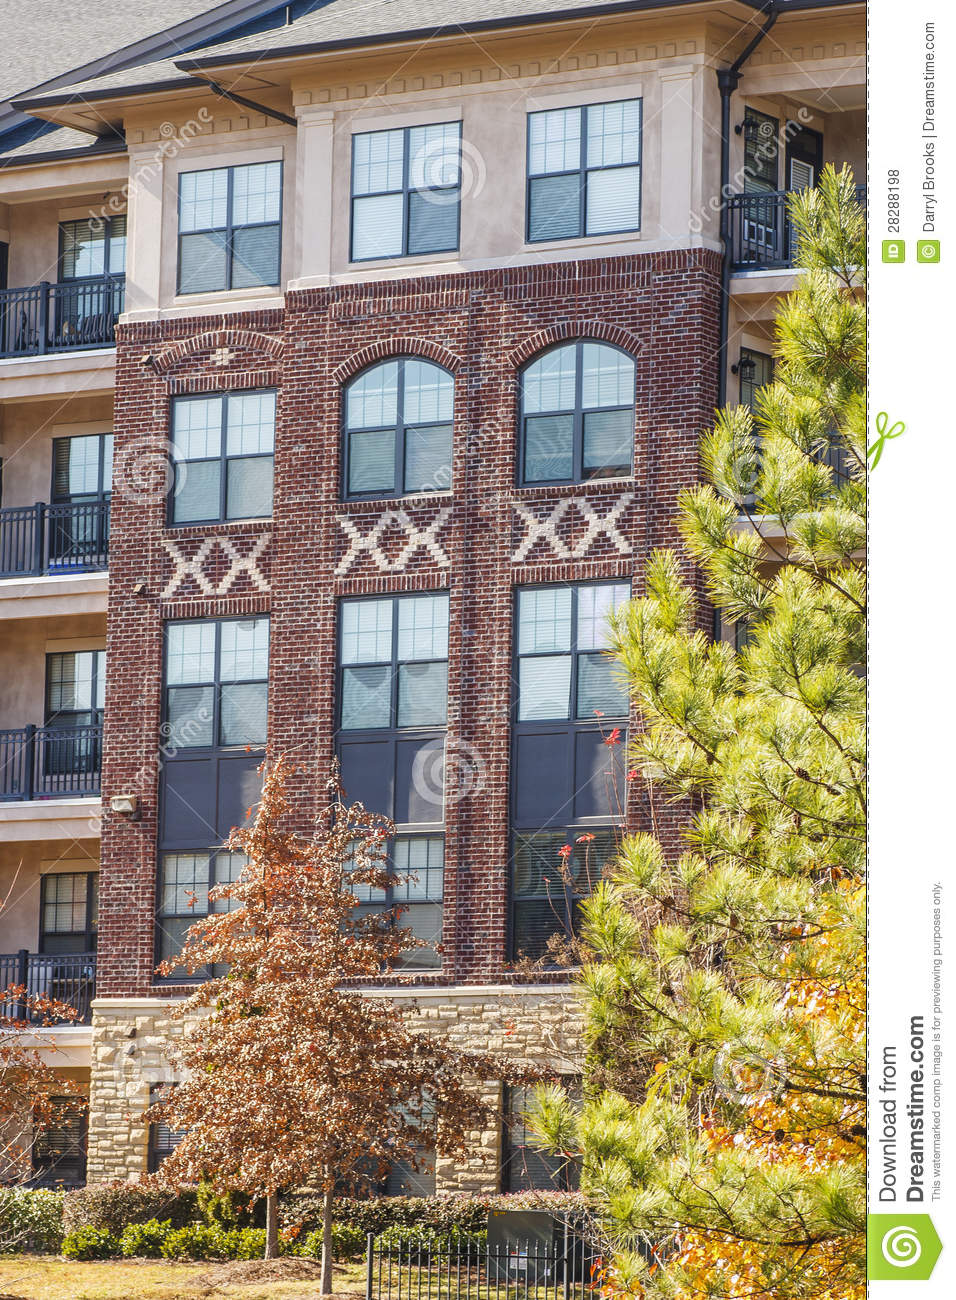 Brick Apartments By Pine Tree Royalty Free Stock Photos ...